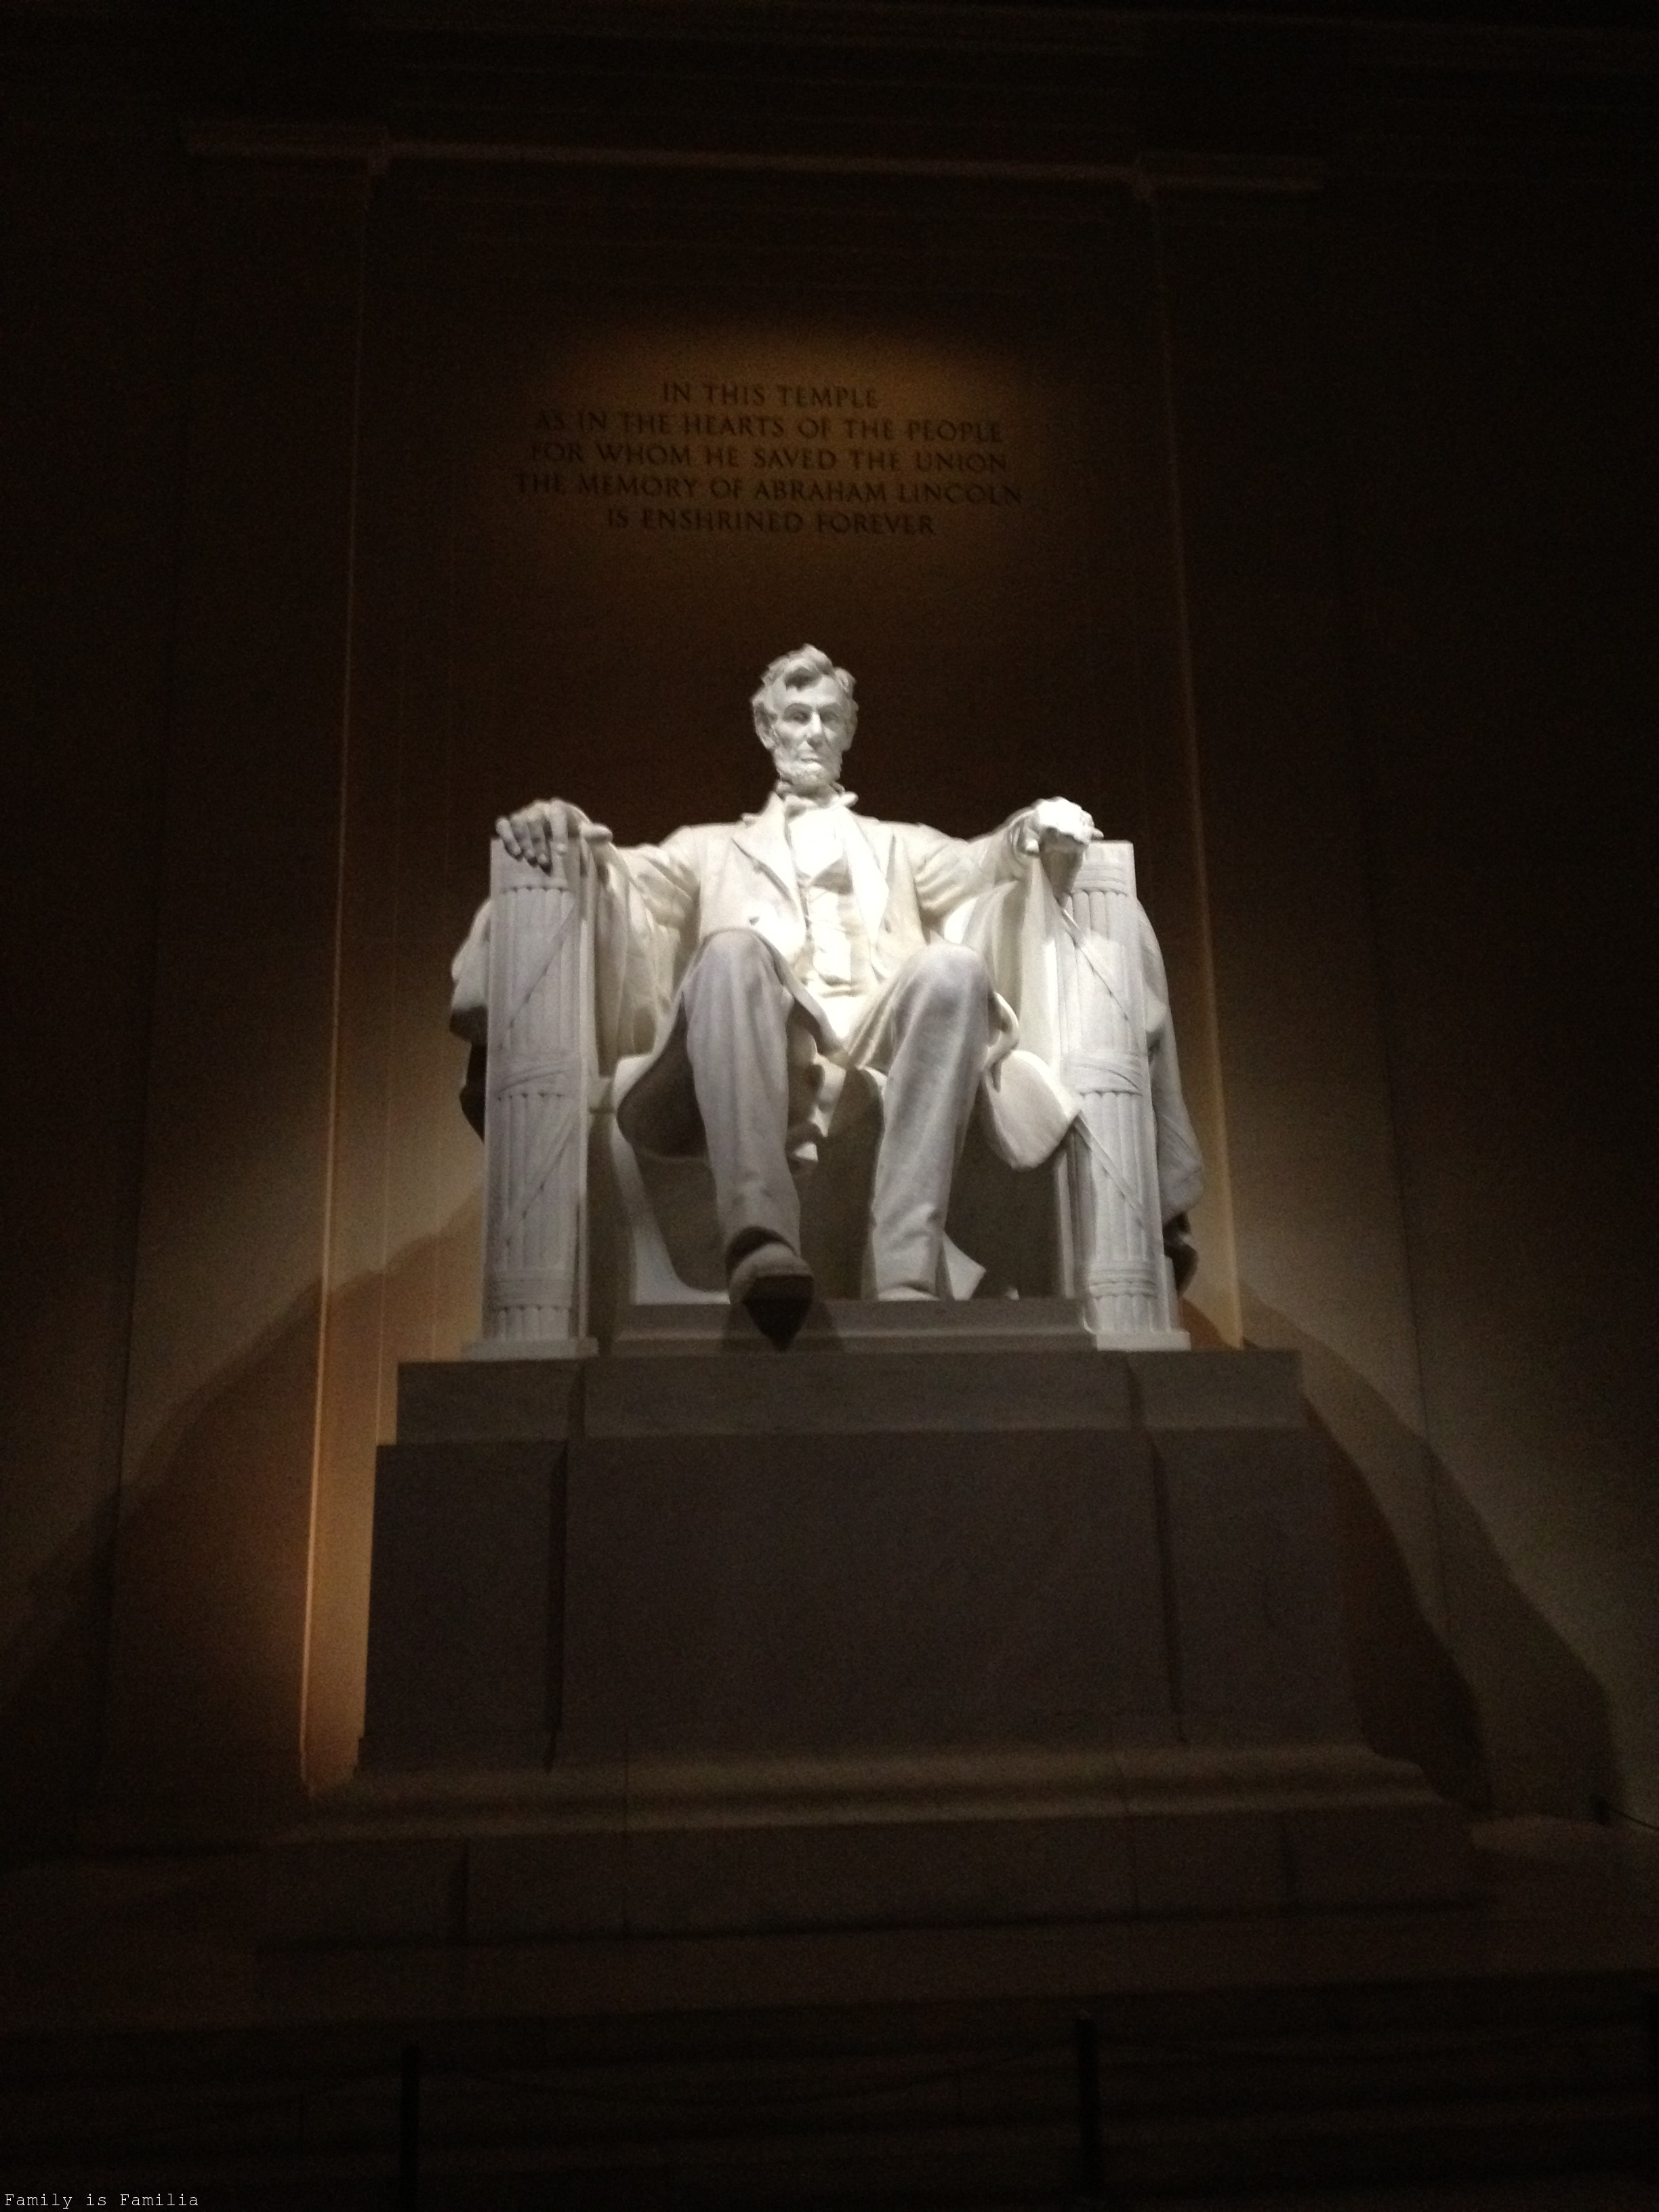 dc-or-bust-my-recap-on-the-trip-of-a-lifetime-with-topblogueras